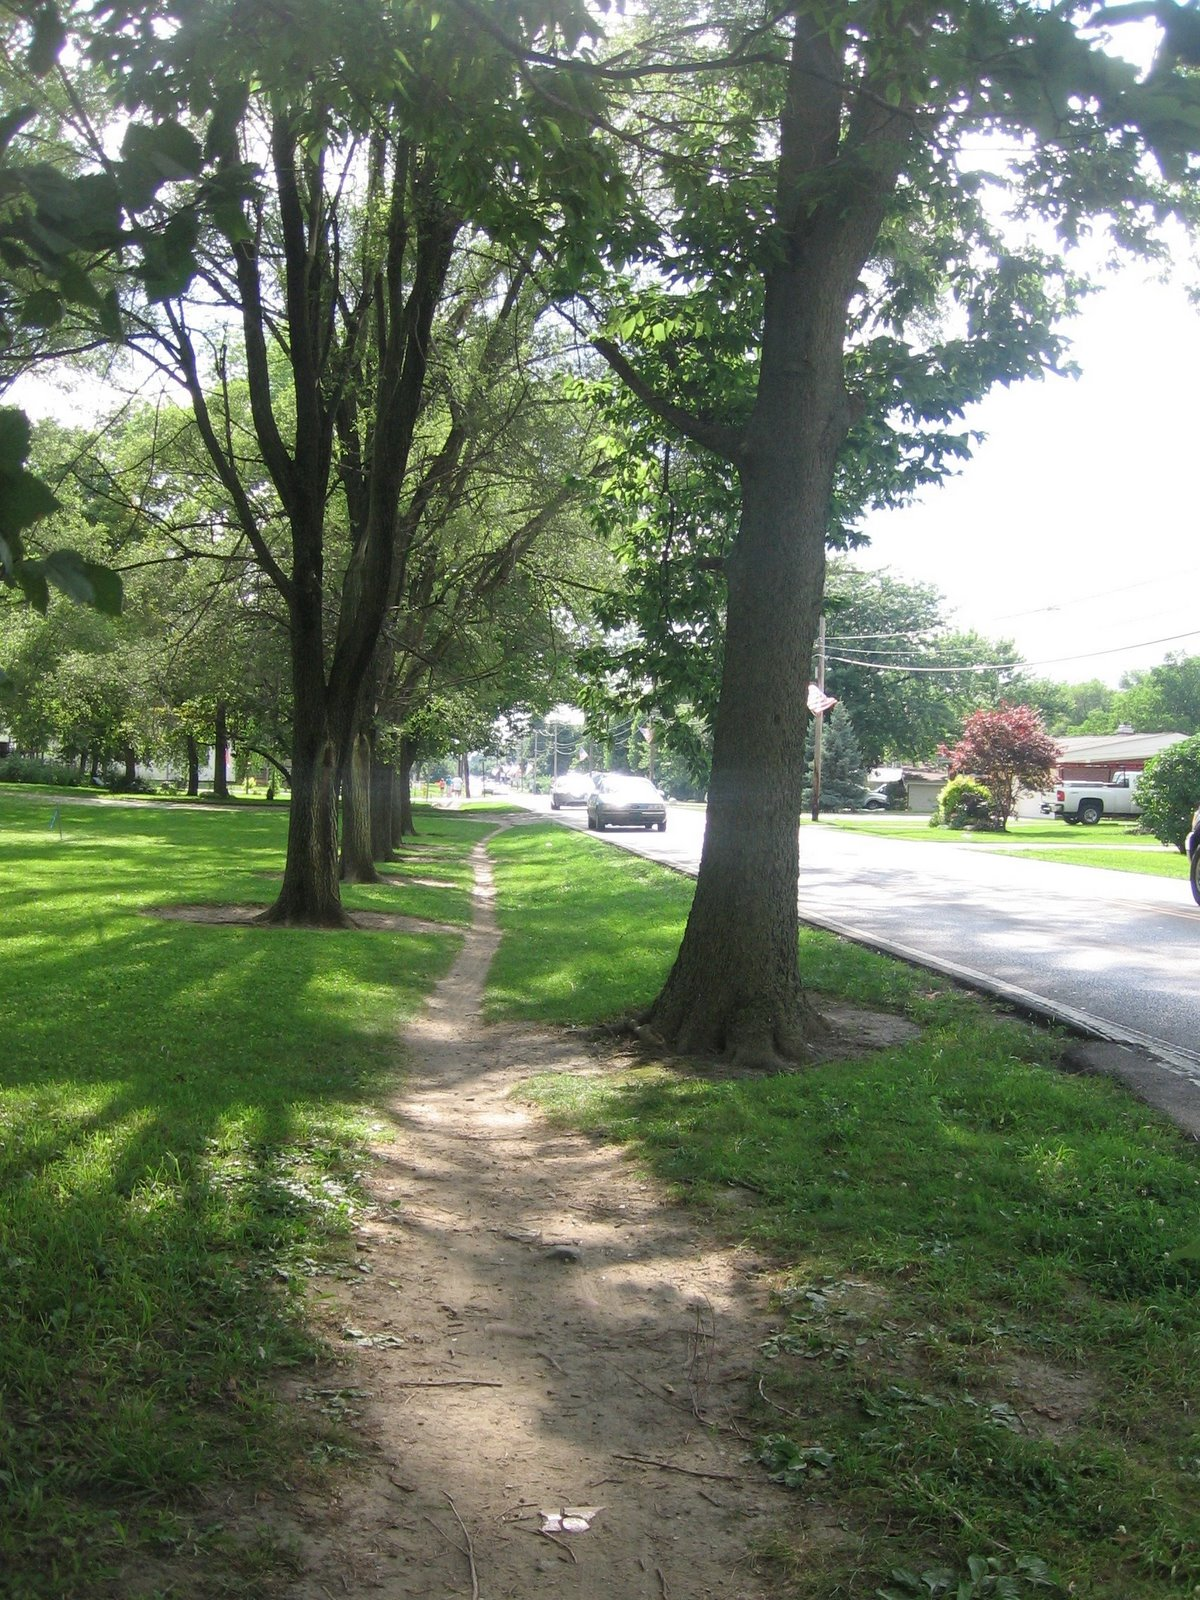 desire path shows need for complete streets